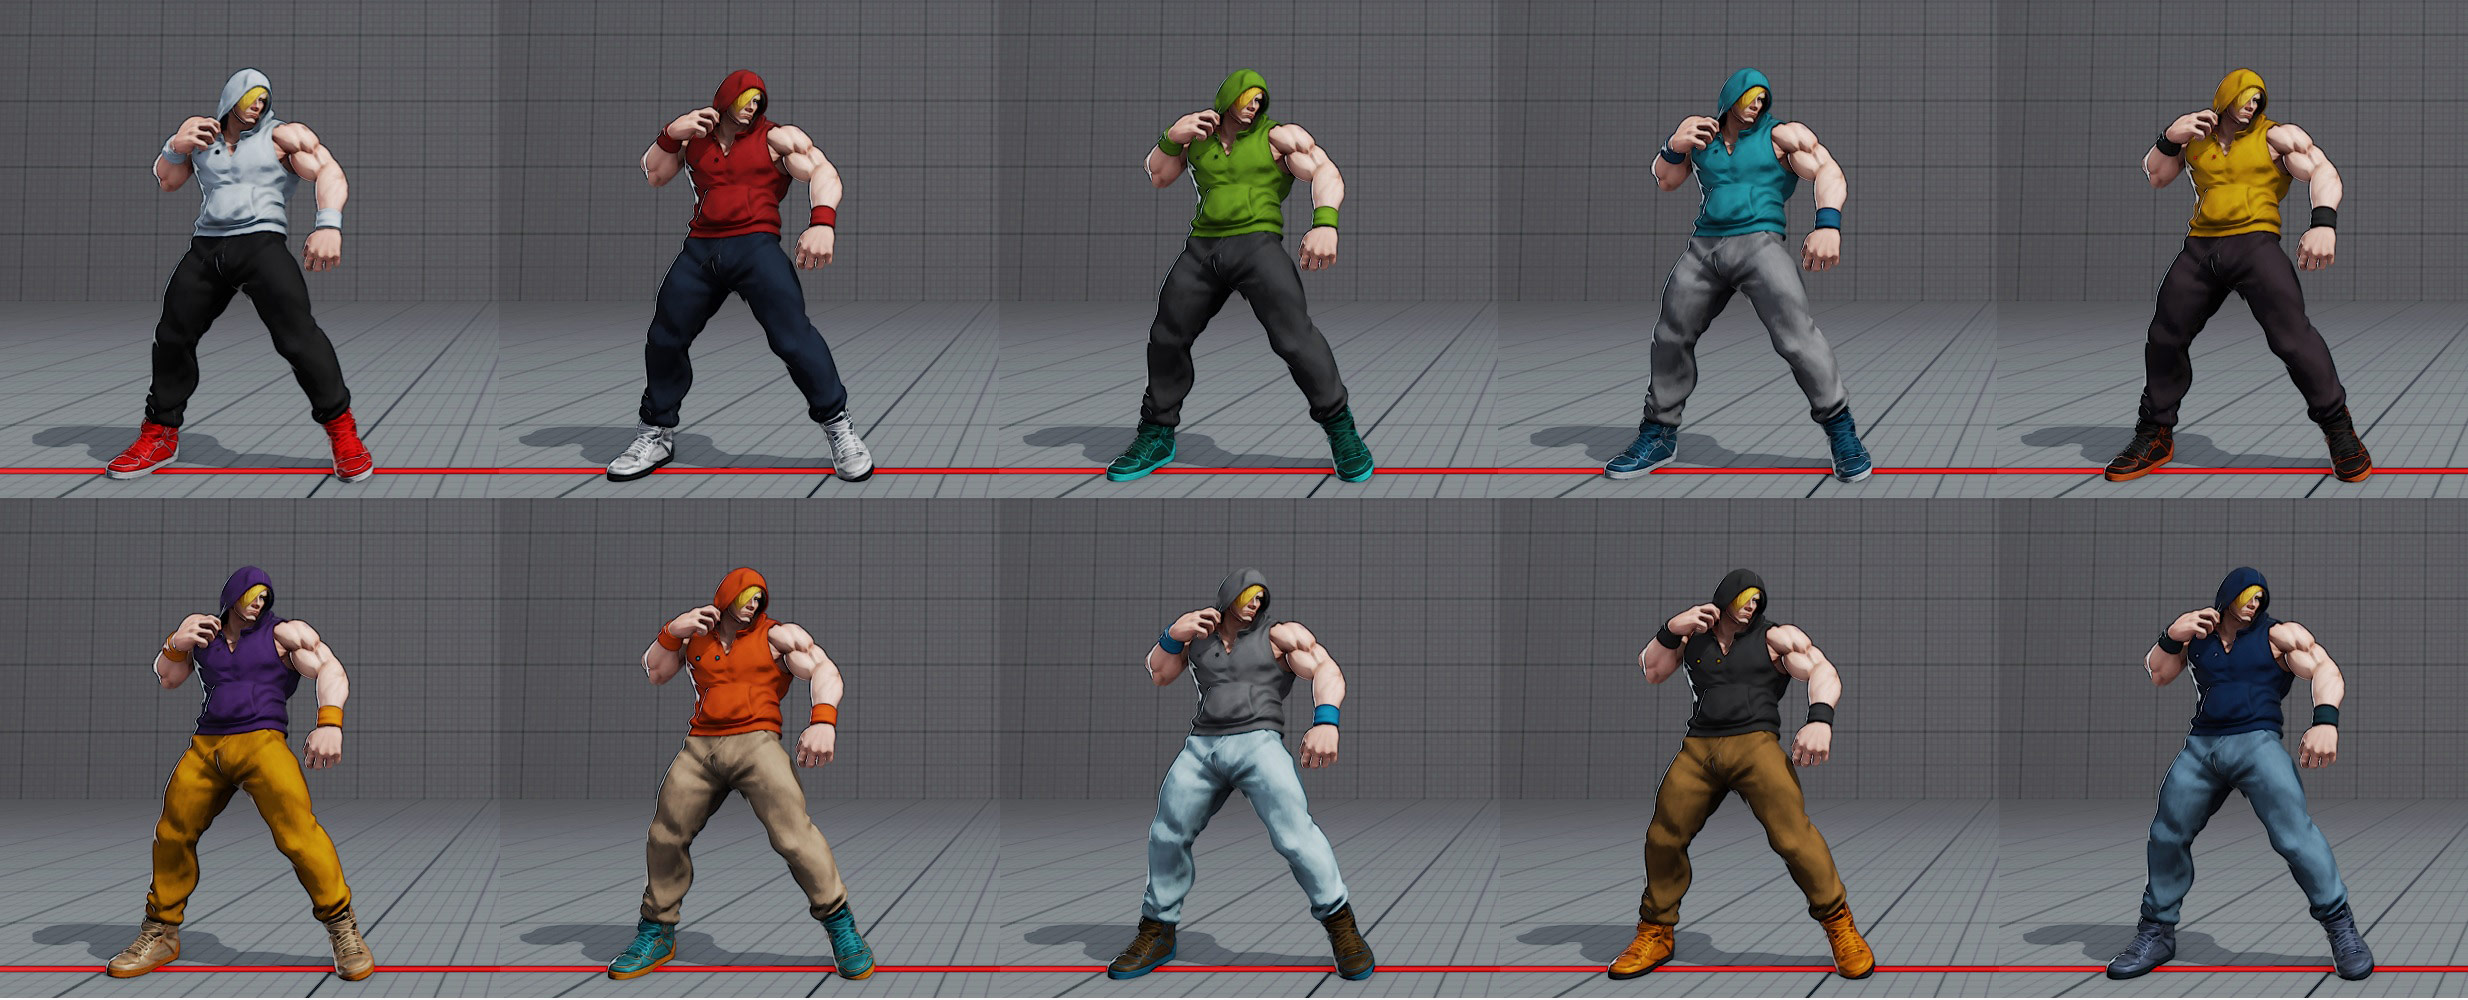 Ed's costumes and colors in Street Fighter 5 3 out of 6 image gallery